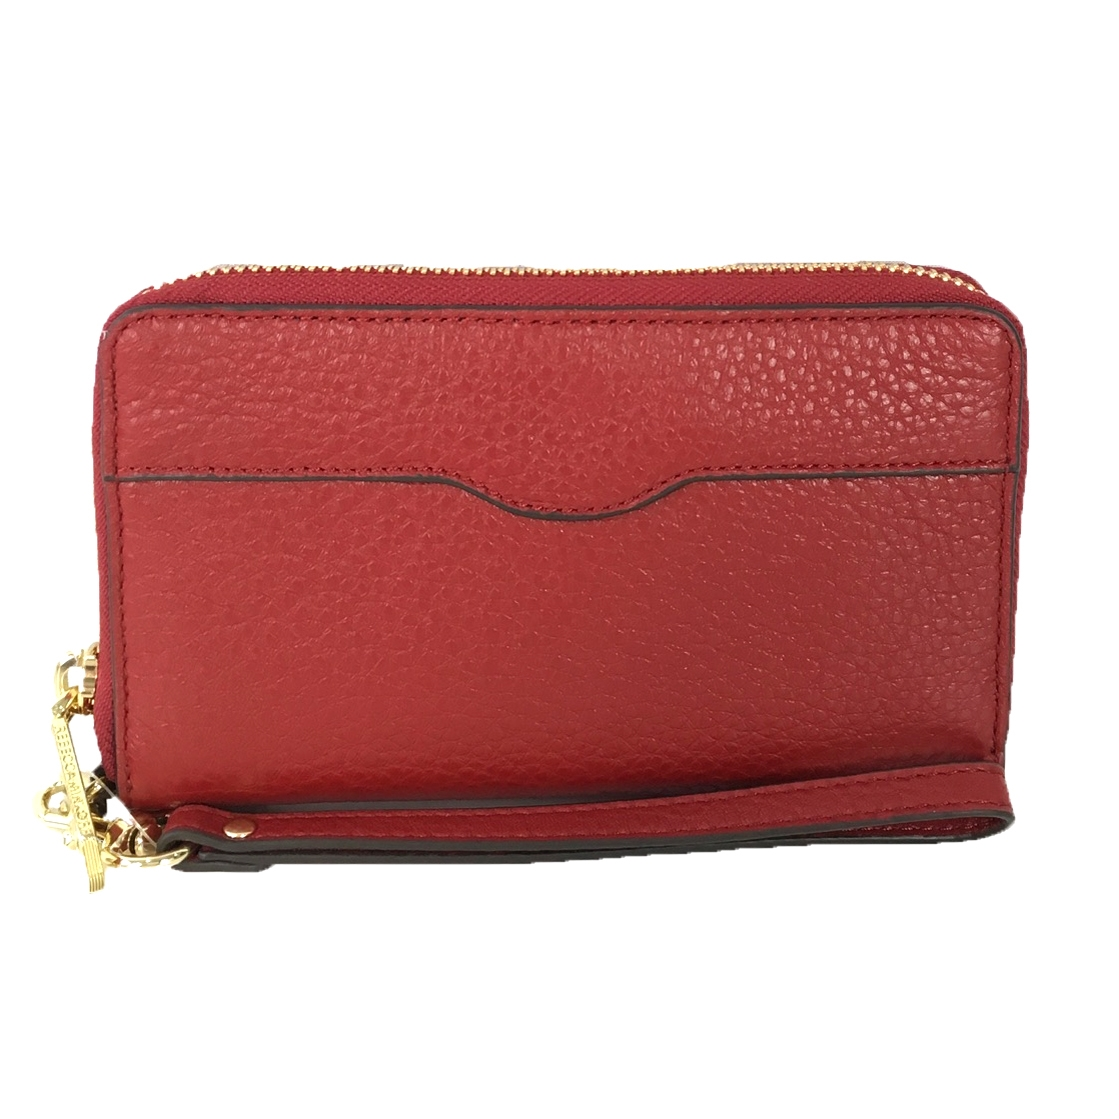 new styles 4bddf 234a0 Rebecca Minkoff MAB iPhone 8 / 7 / 6 Leather Wristlet Wallet, Deep Red